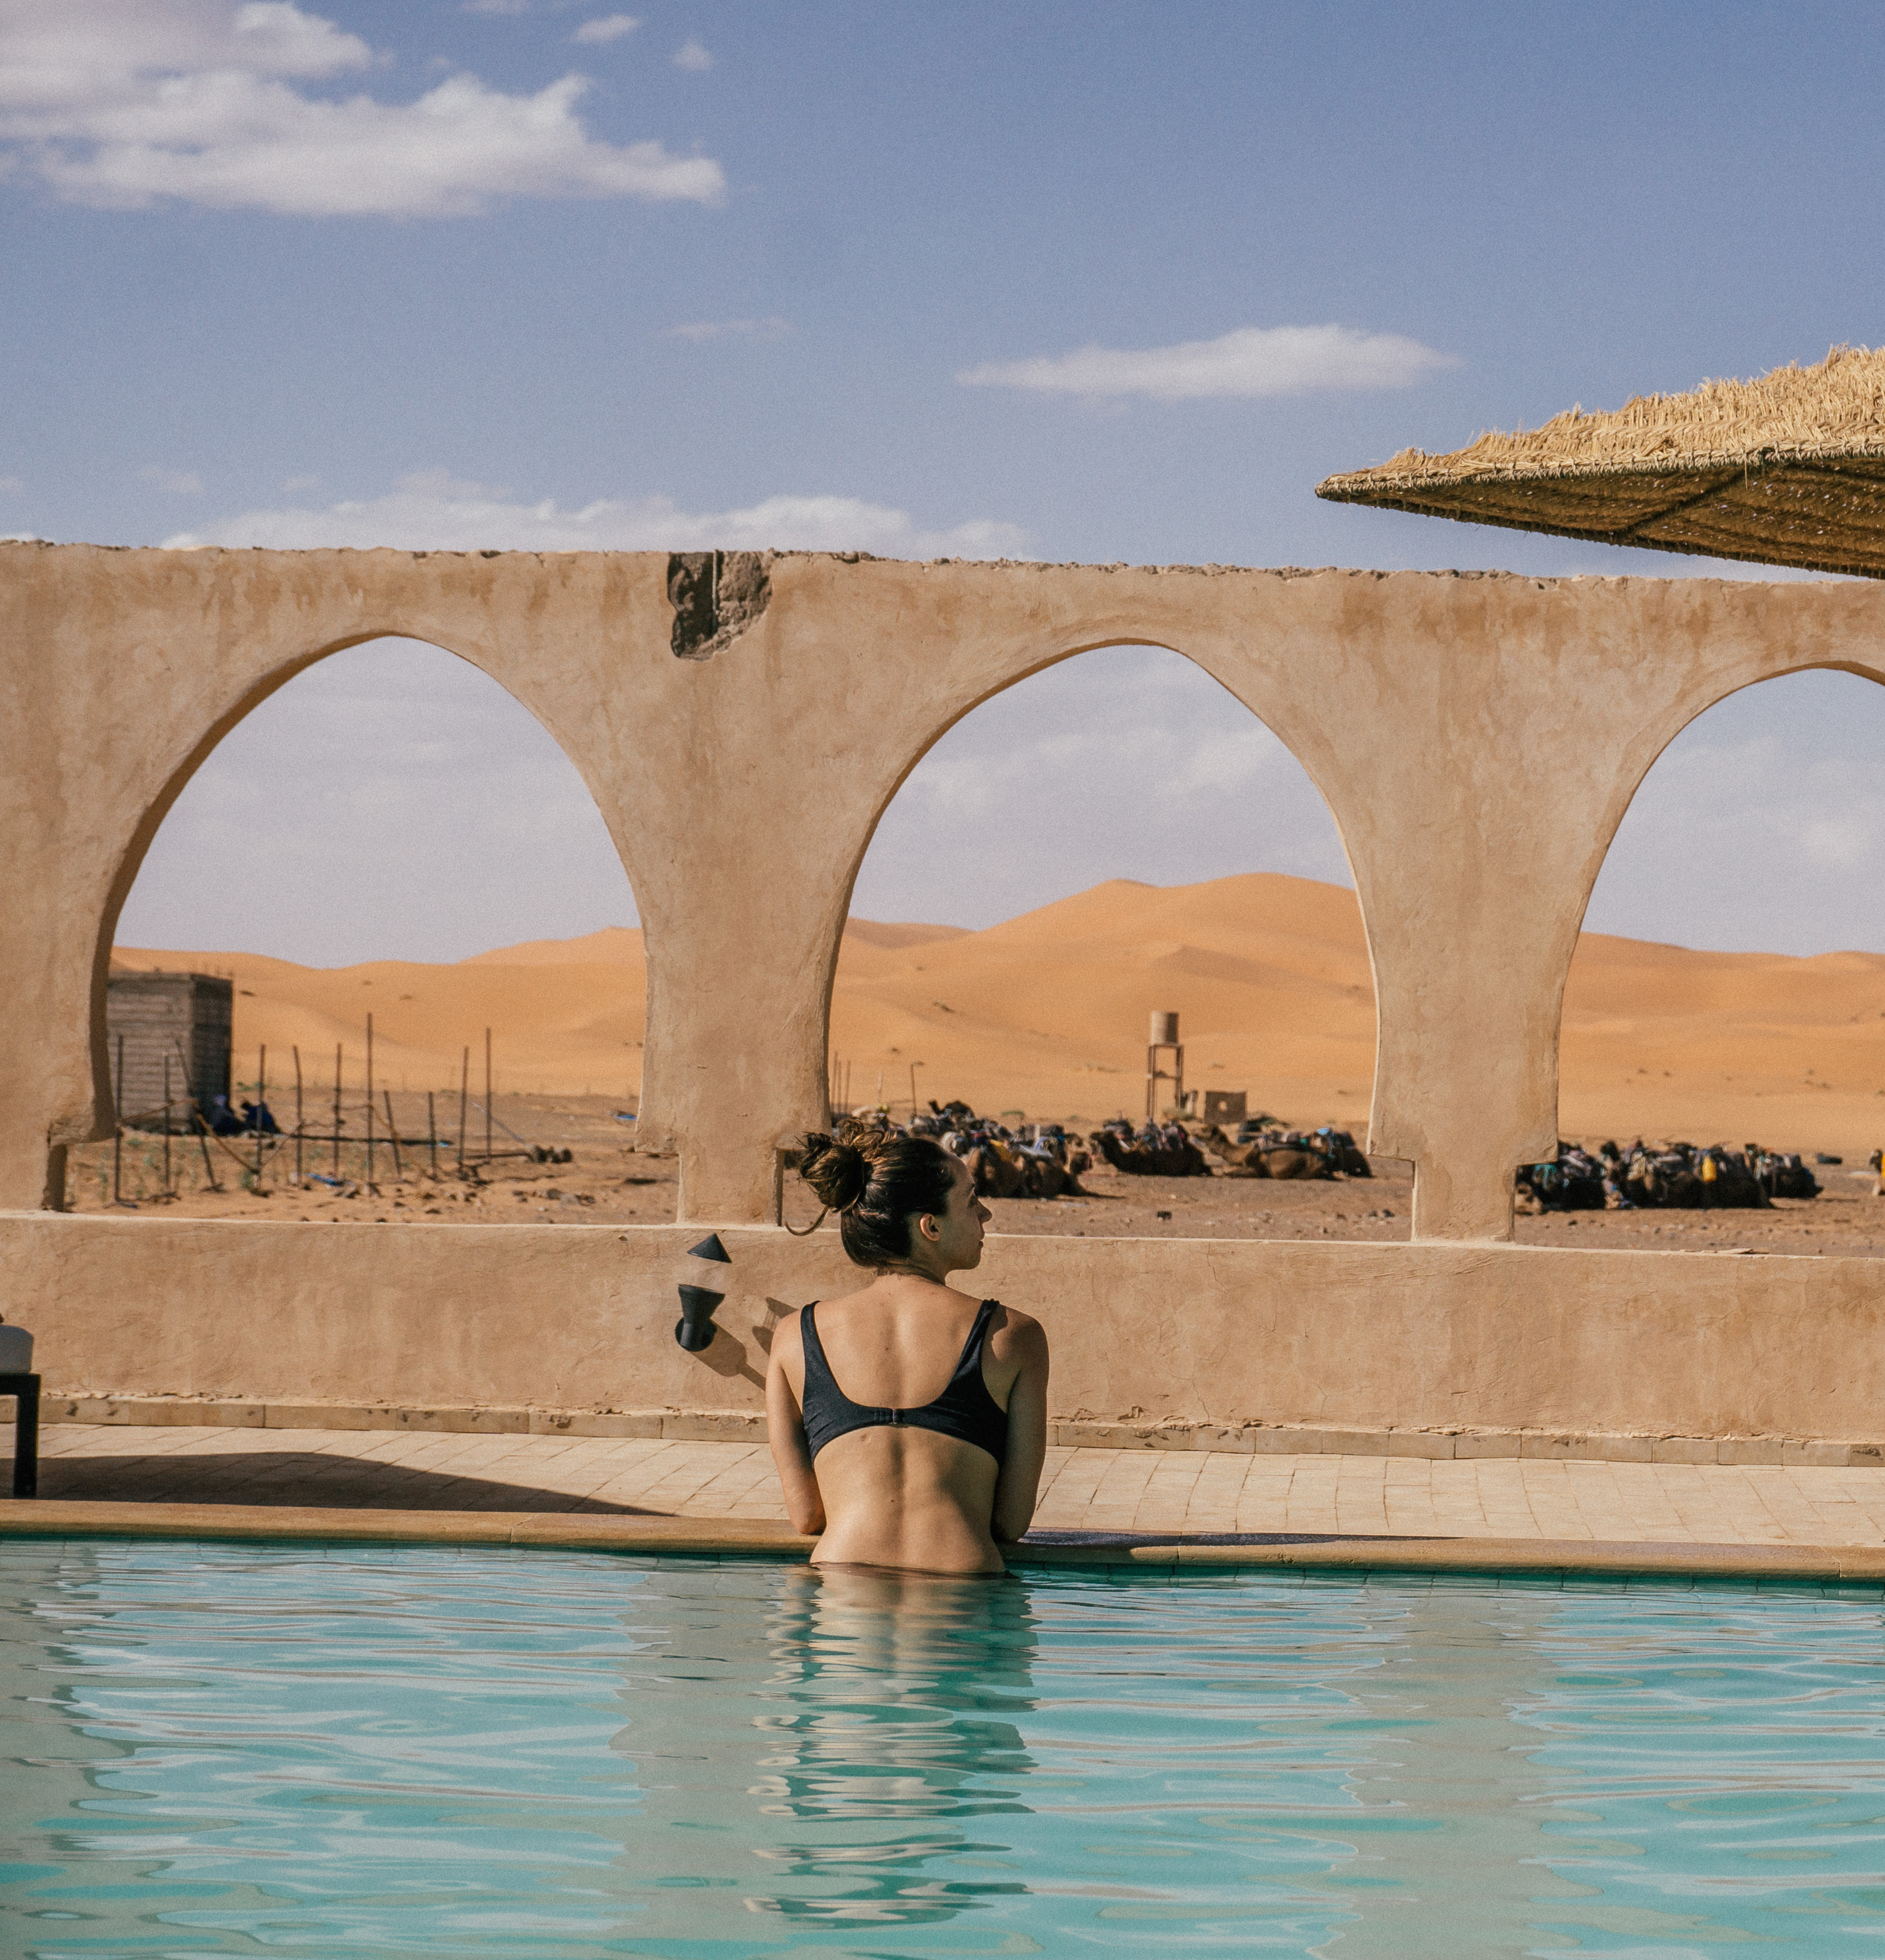 Swimming in Merzouga hotel with a view of the dunes and camels